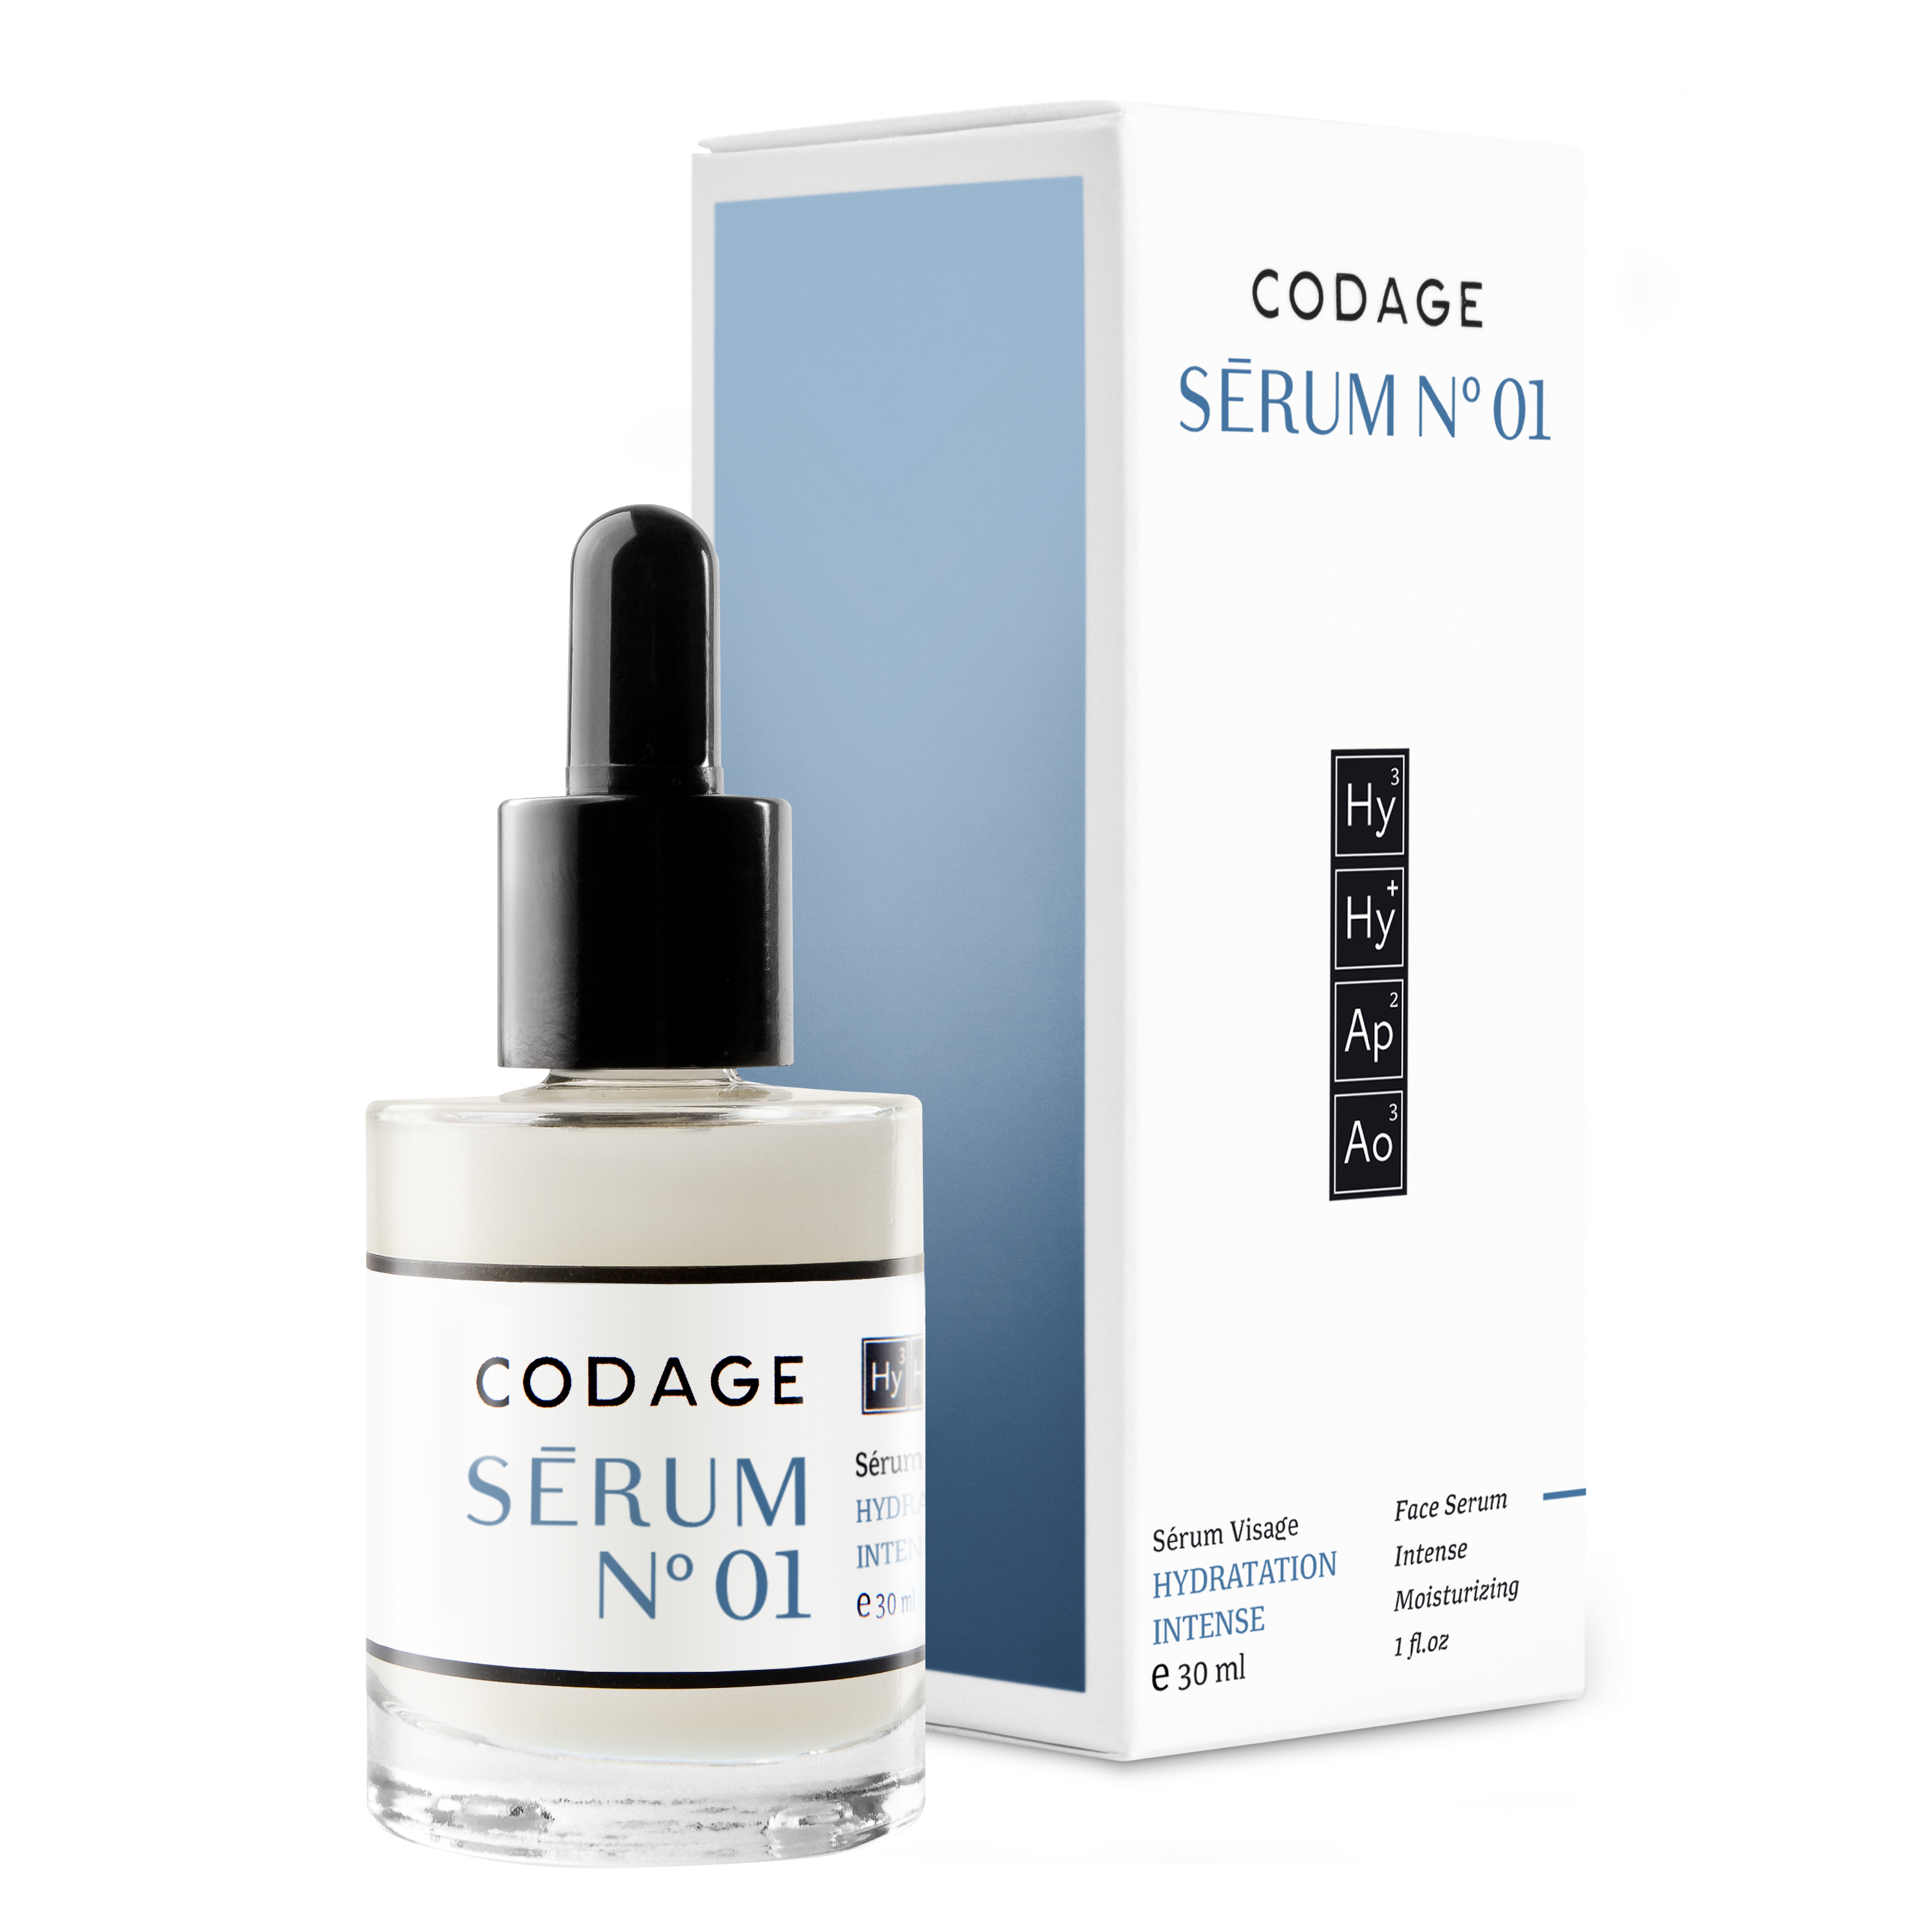 Serum n°1 Intense Moisturizing